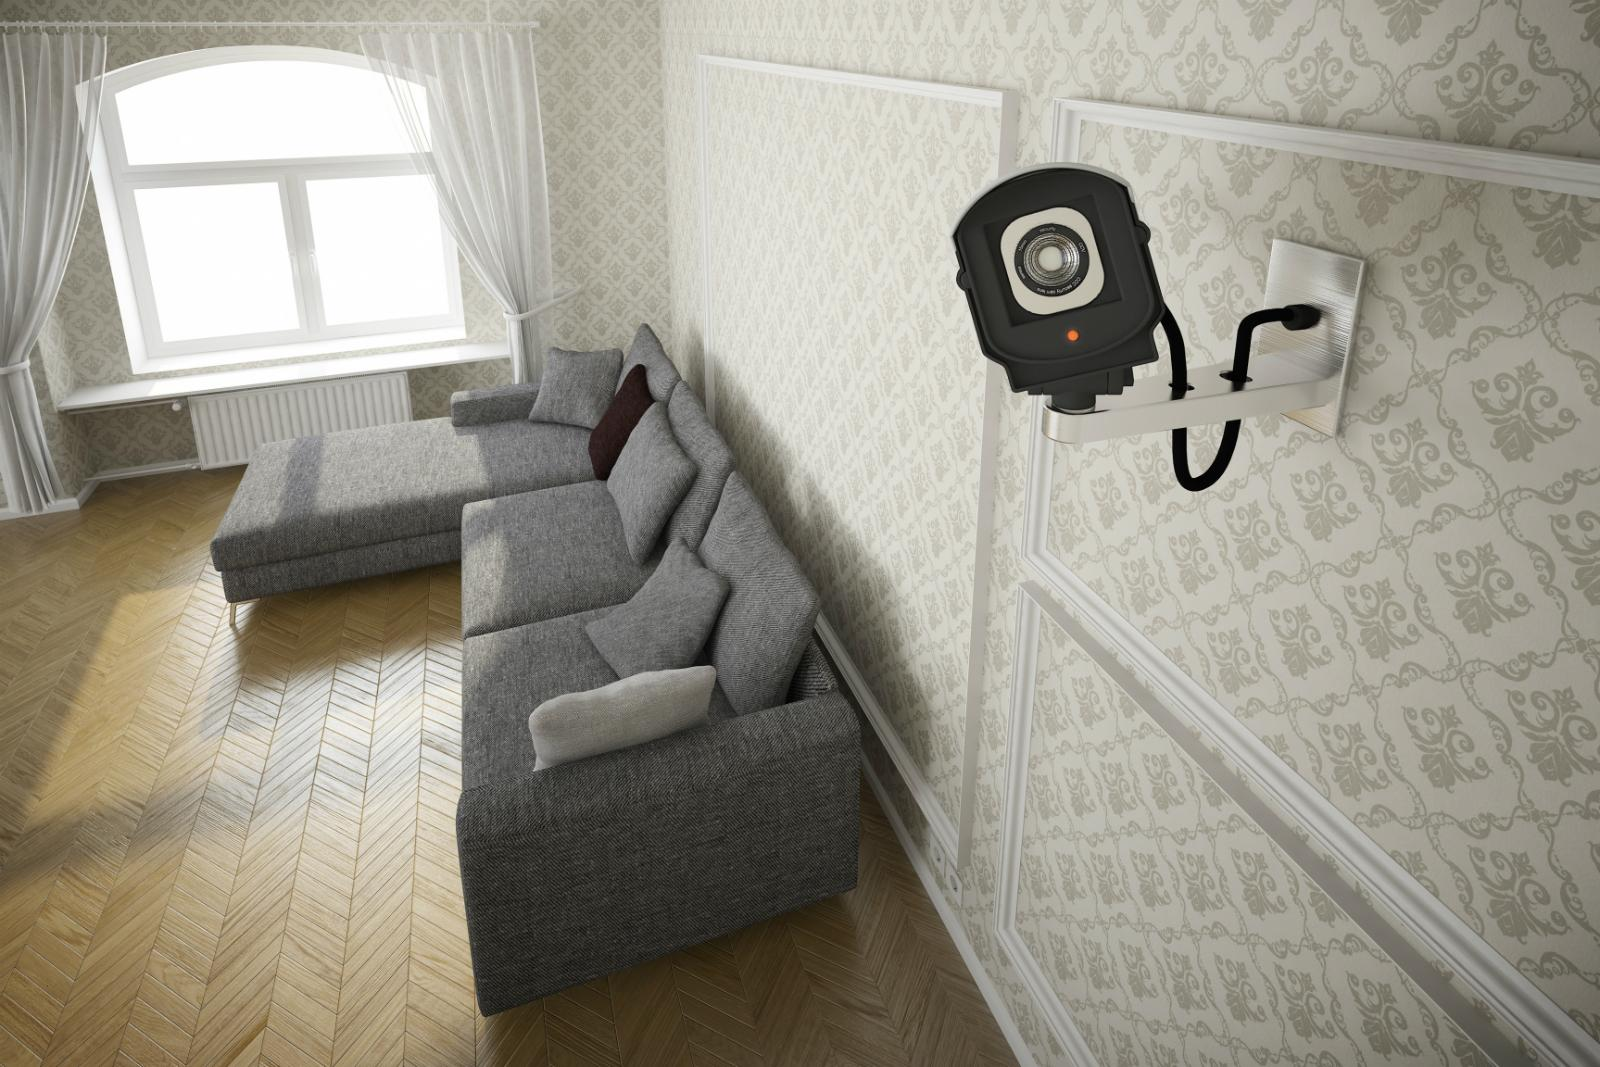 Change Default Passwords To Keep Home Security Cameras